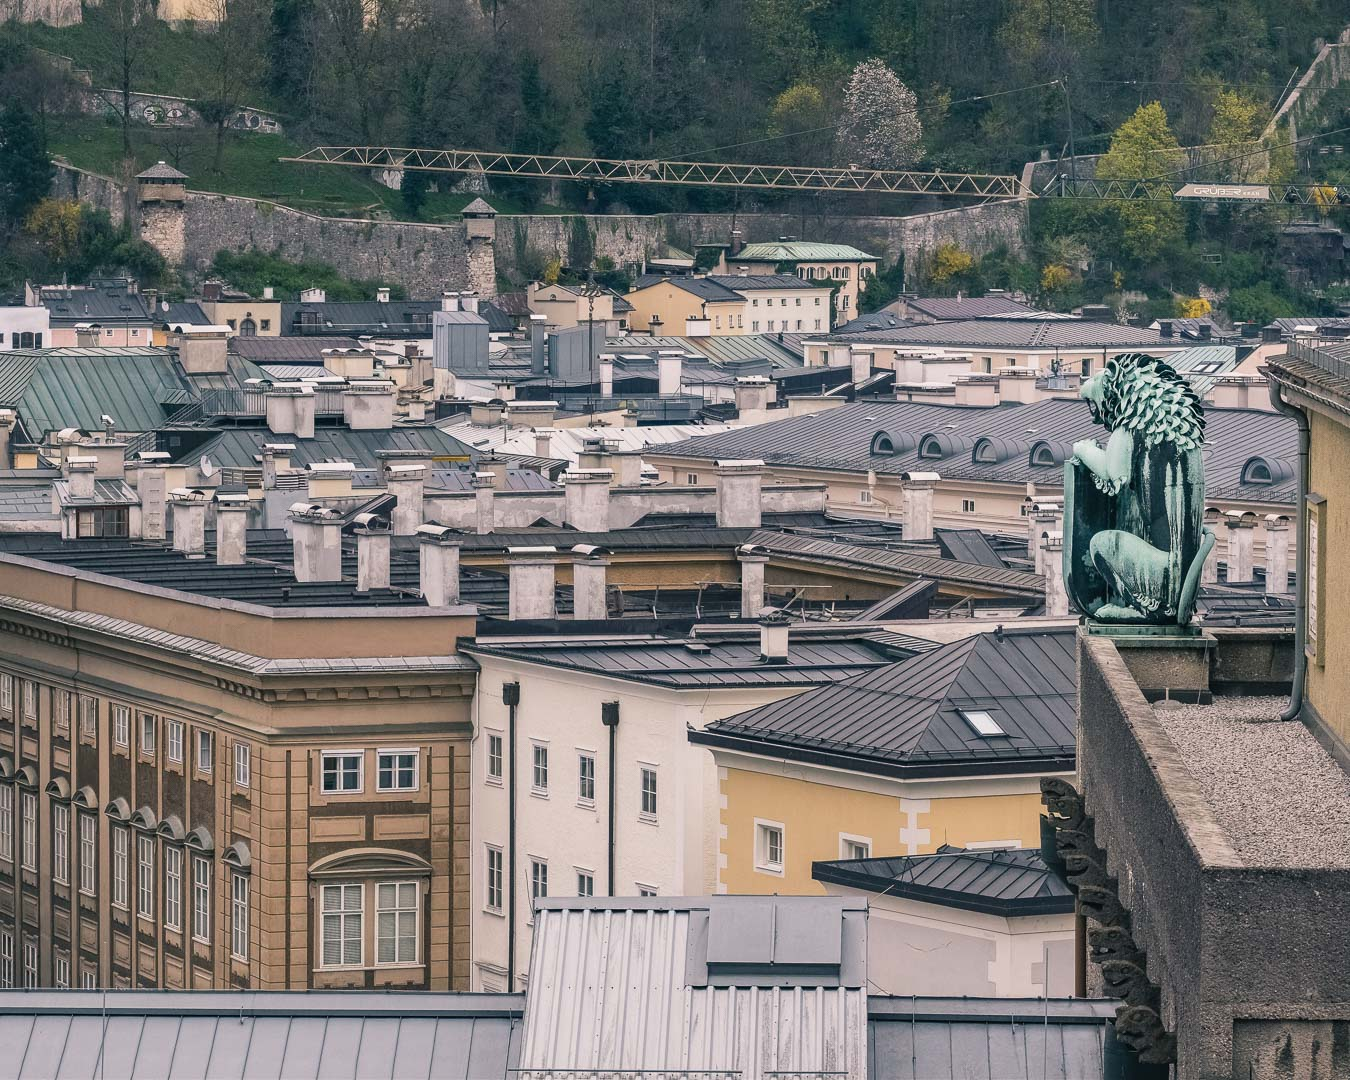 The lion statue on top of the concert hall appeared in the sound of music movie